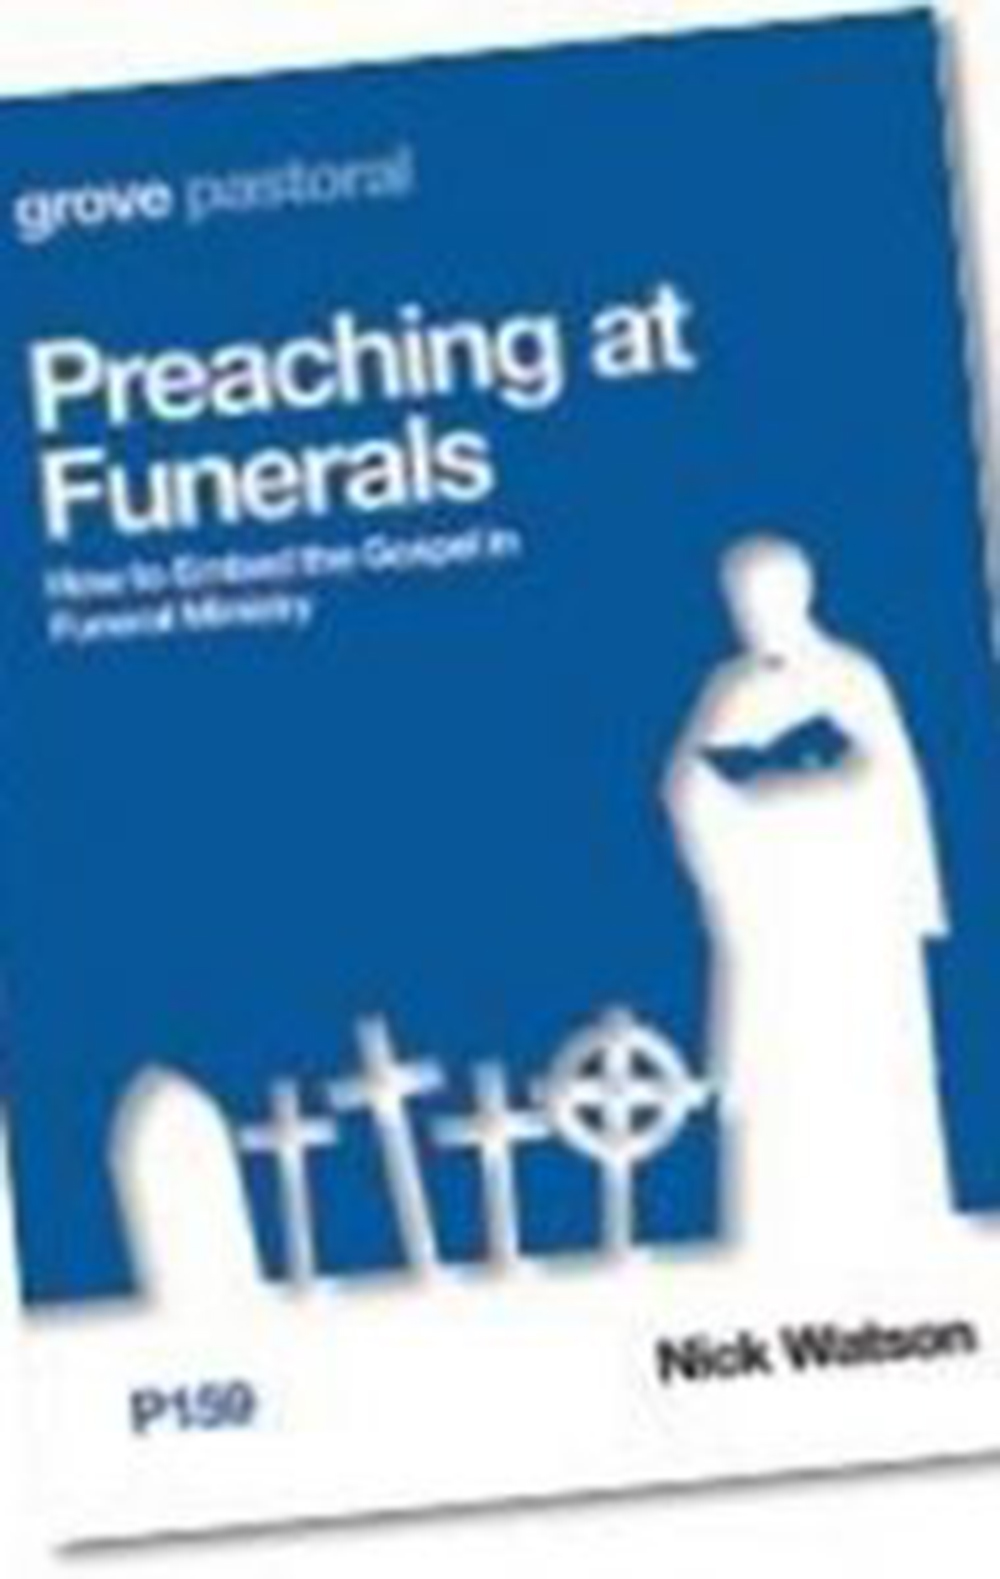 Preaching at Funerals